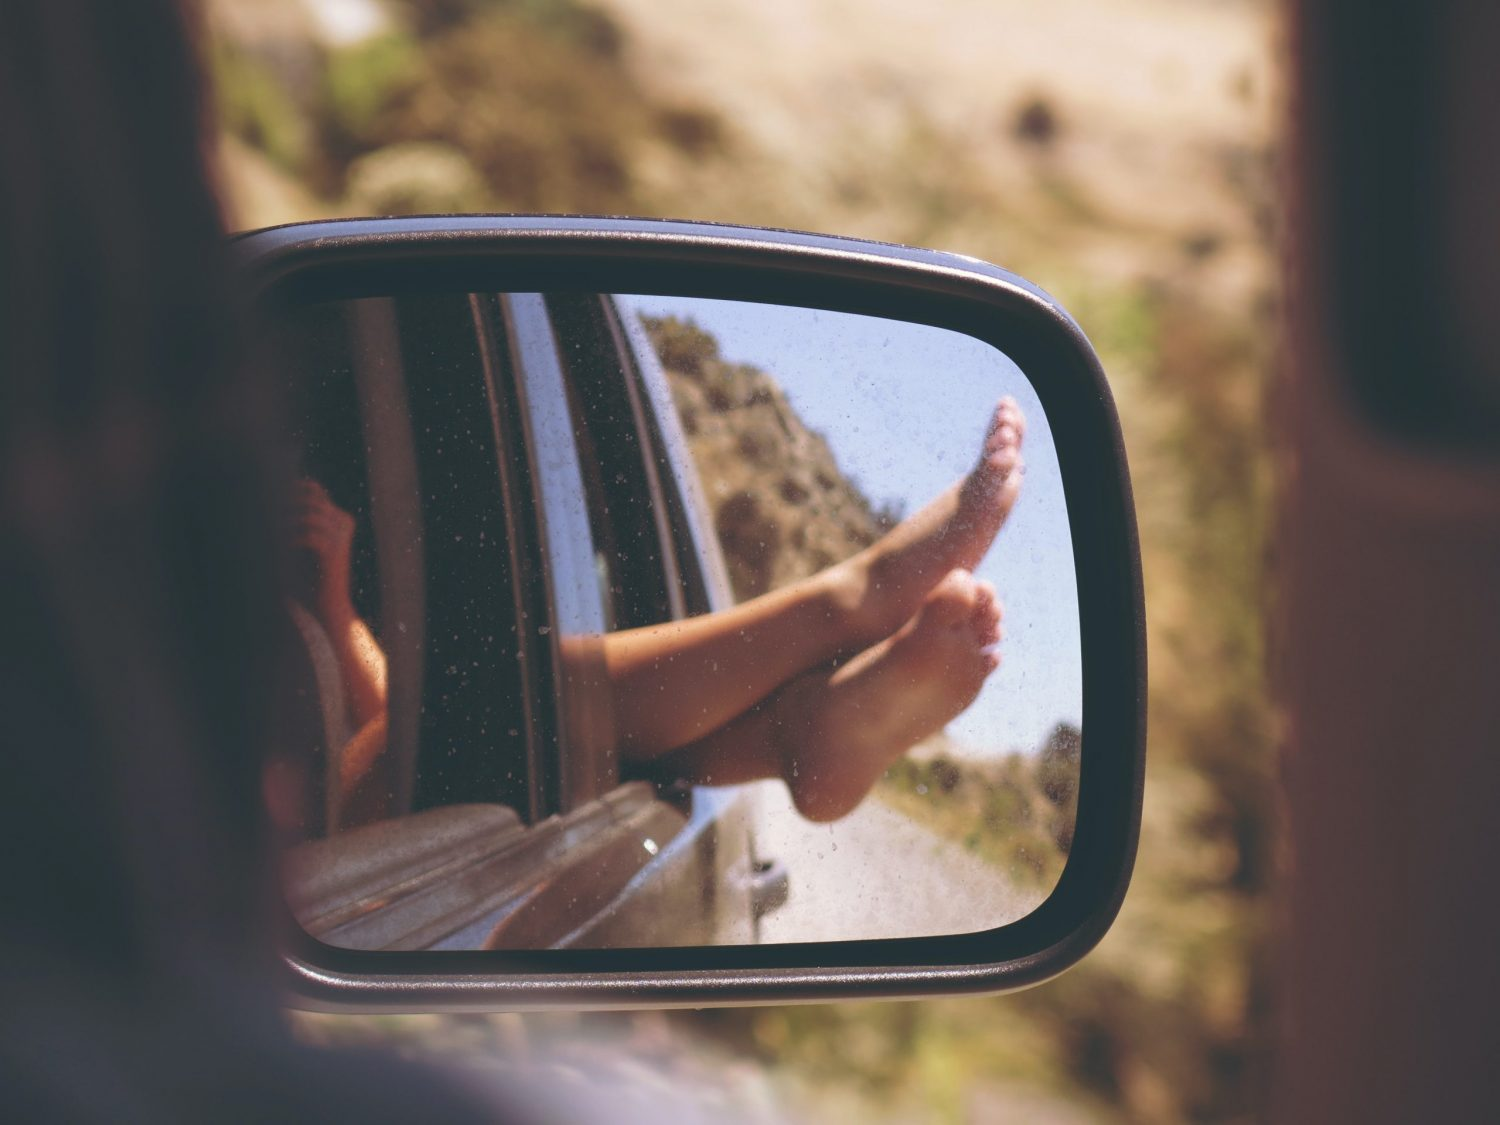 woman's feet in rear view mirror